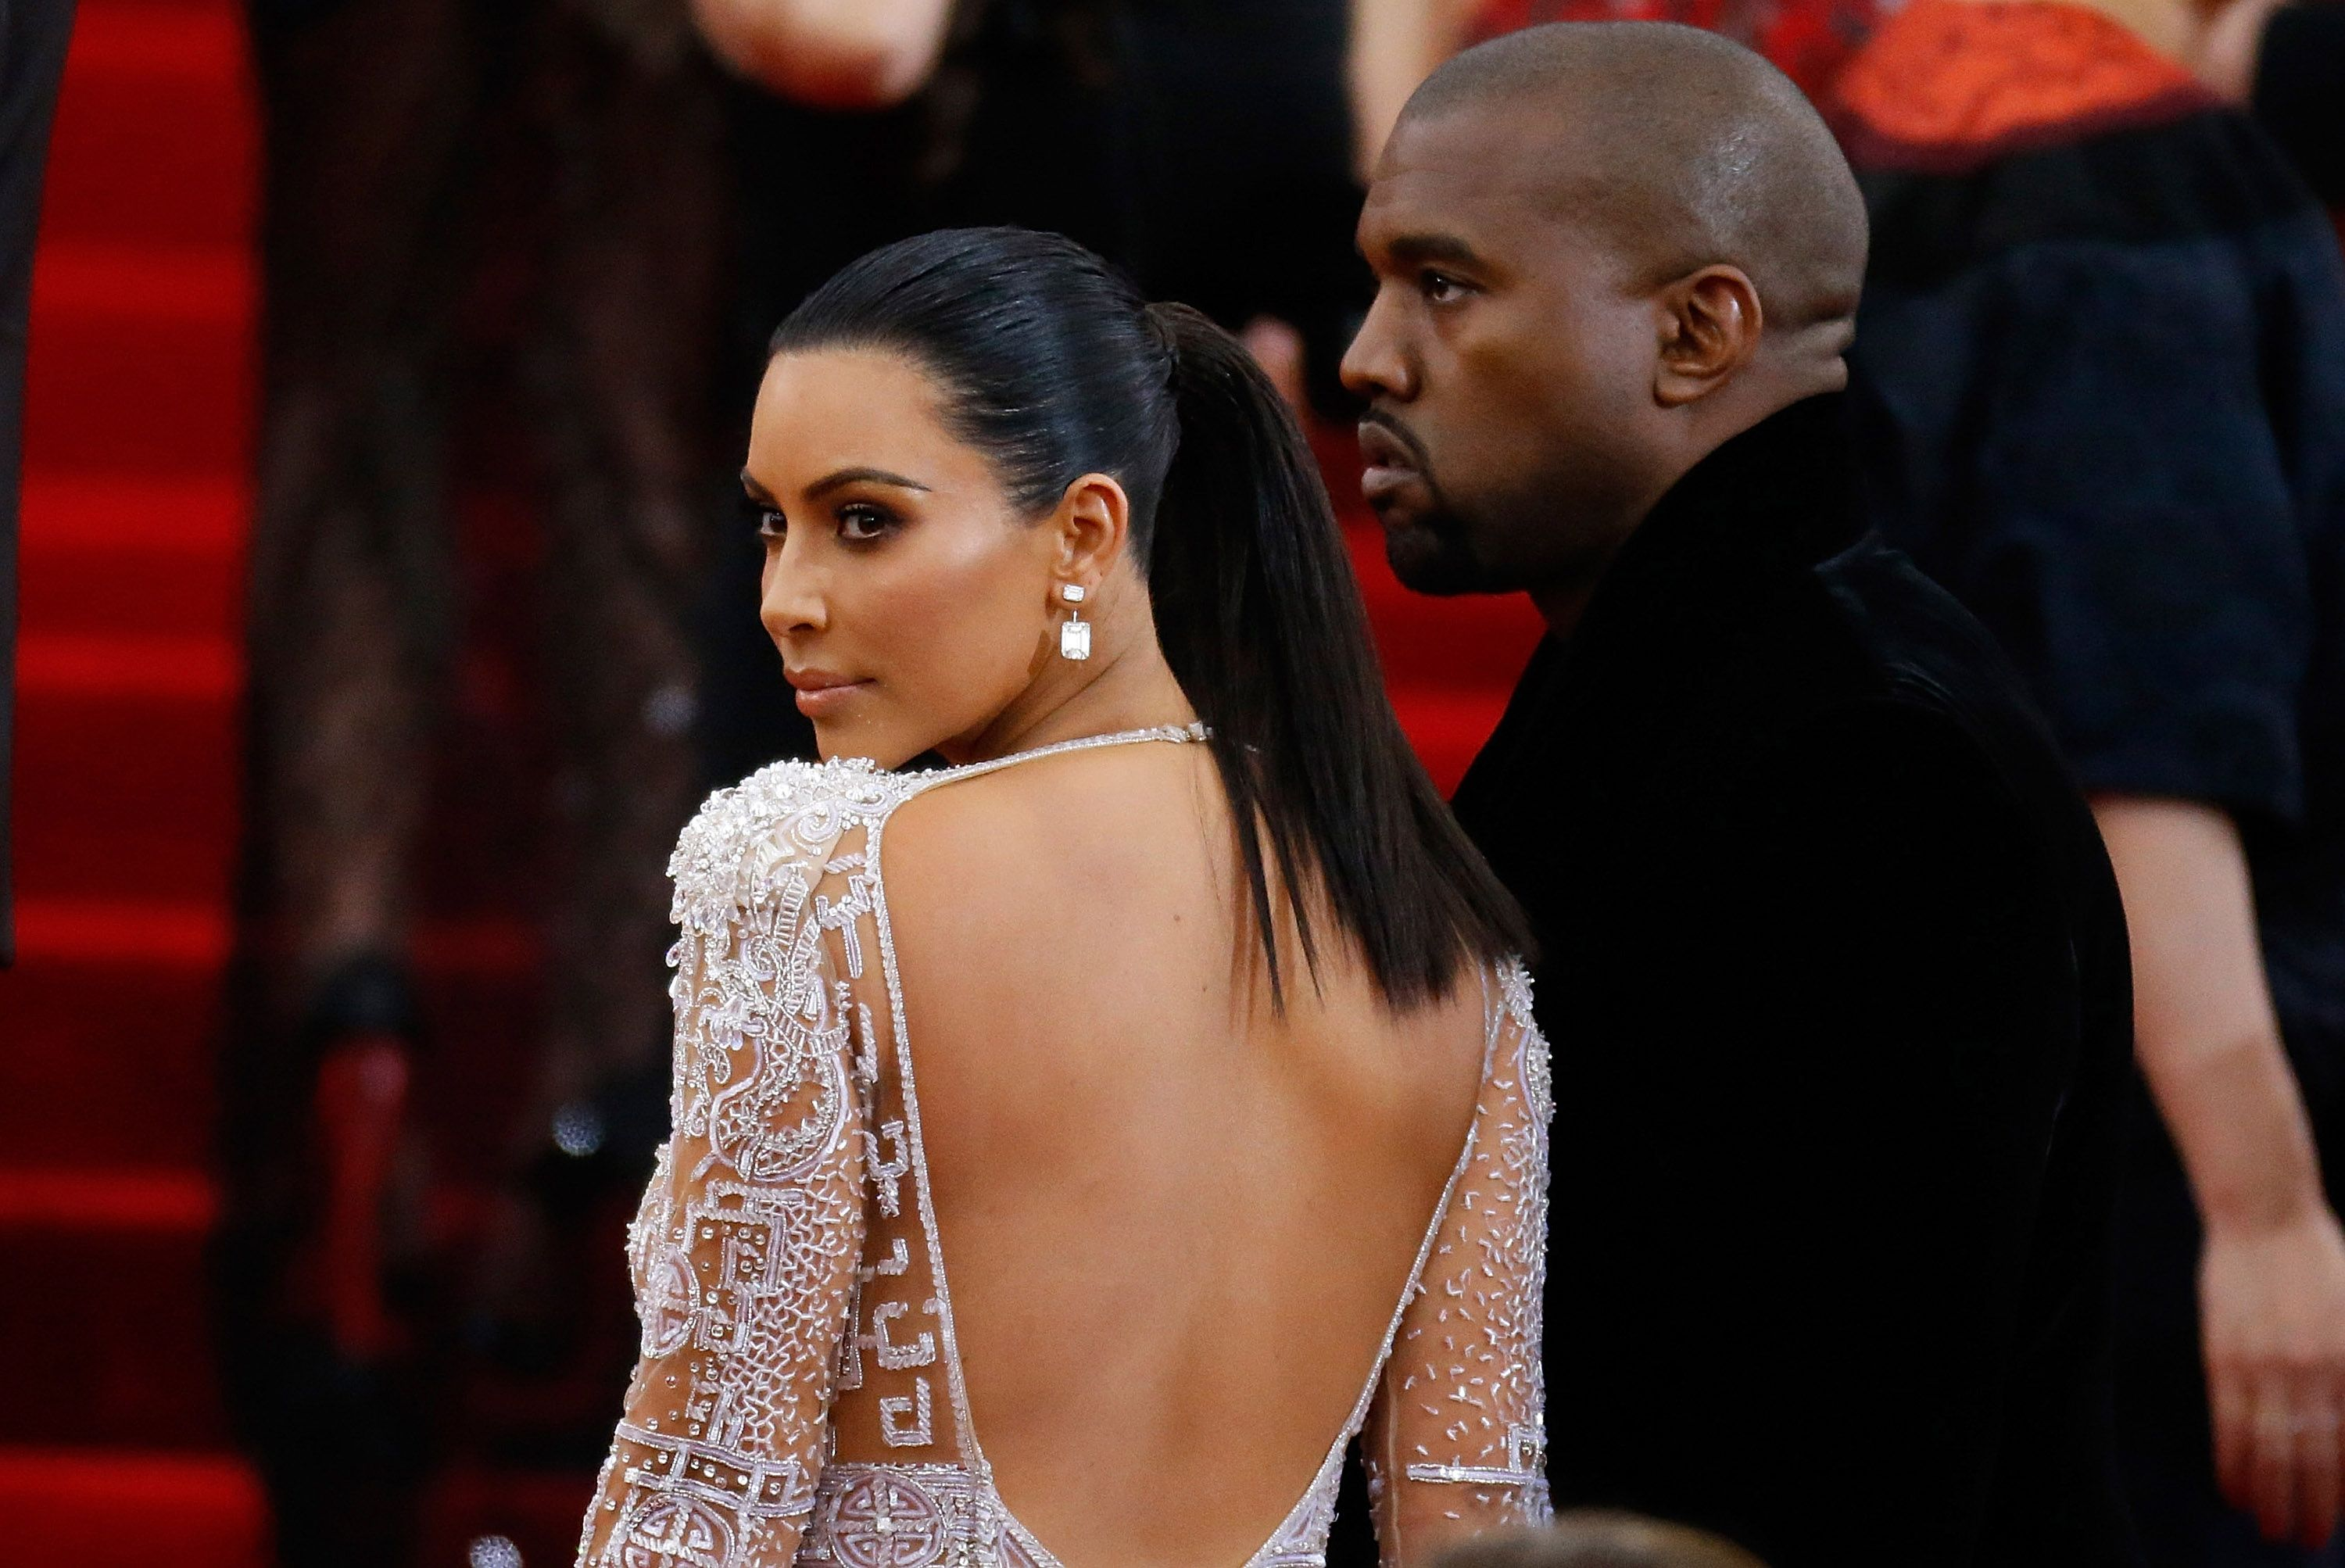 Kim Kardashian and Kanye West Are Very Riled Up About the Jordyn Woods-Tristan Thompson Drama